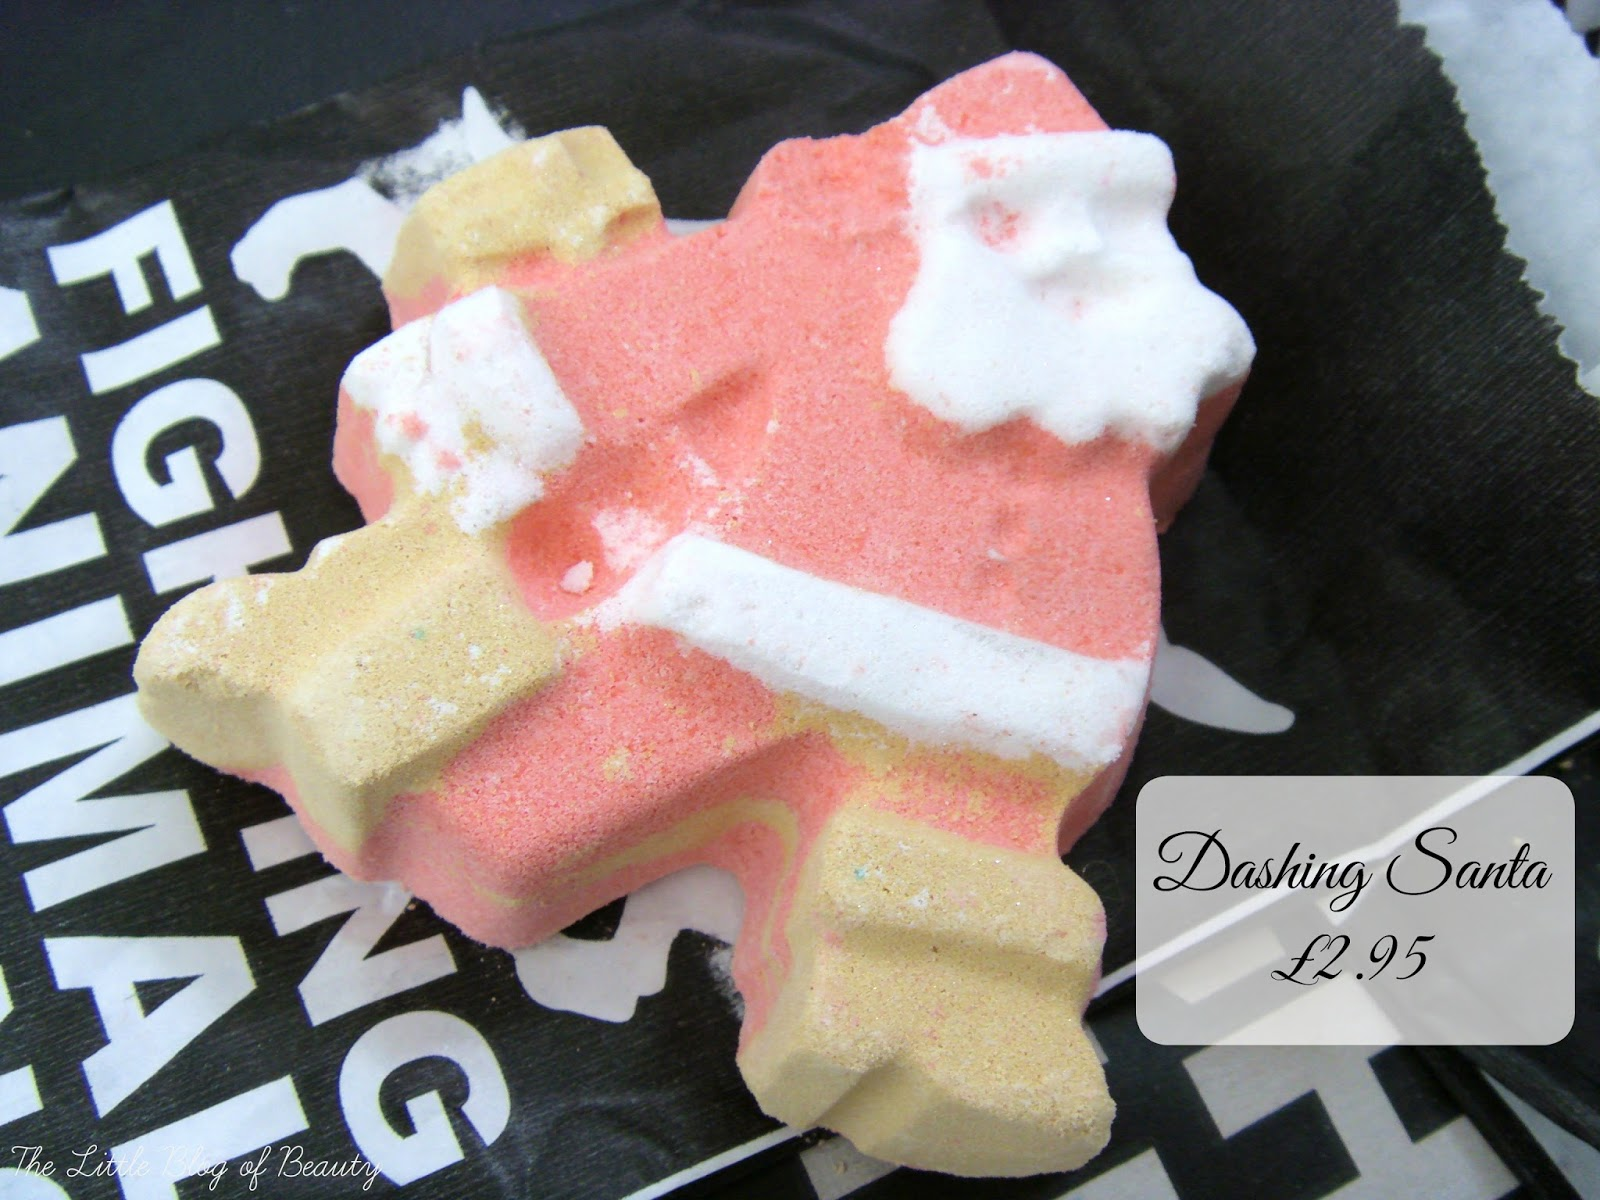 Lush Dashing Santa bath bomb